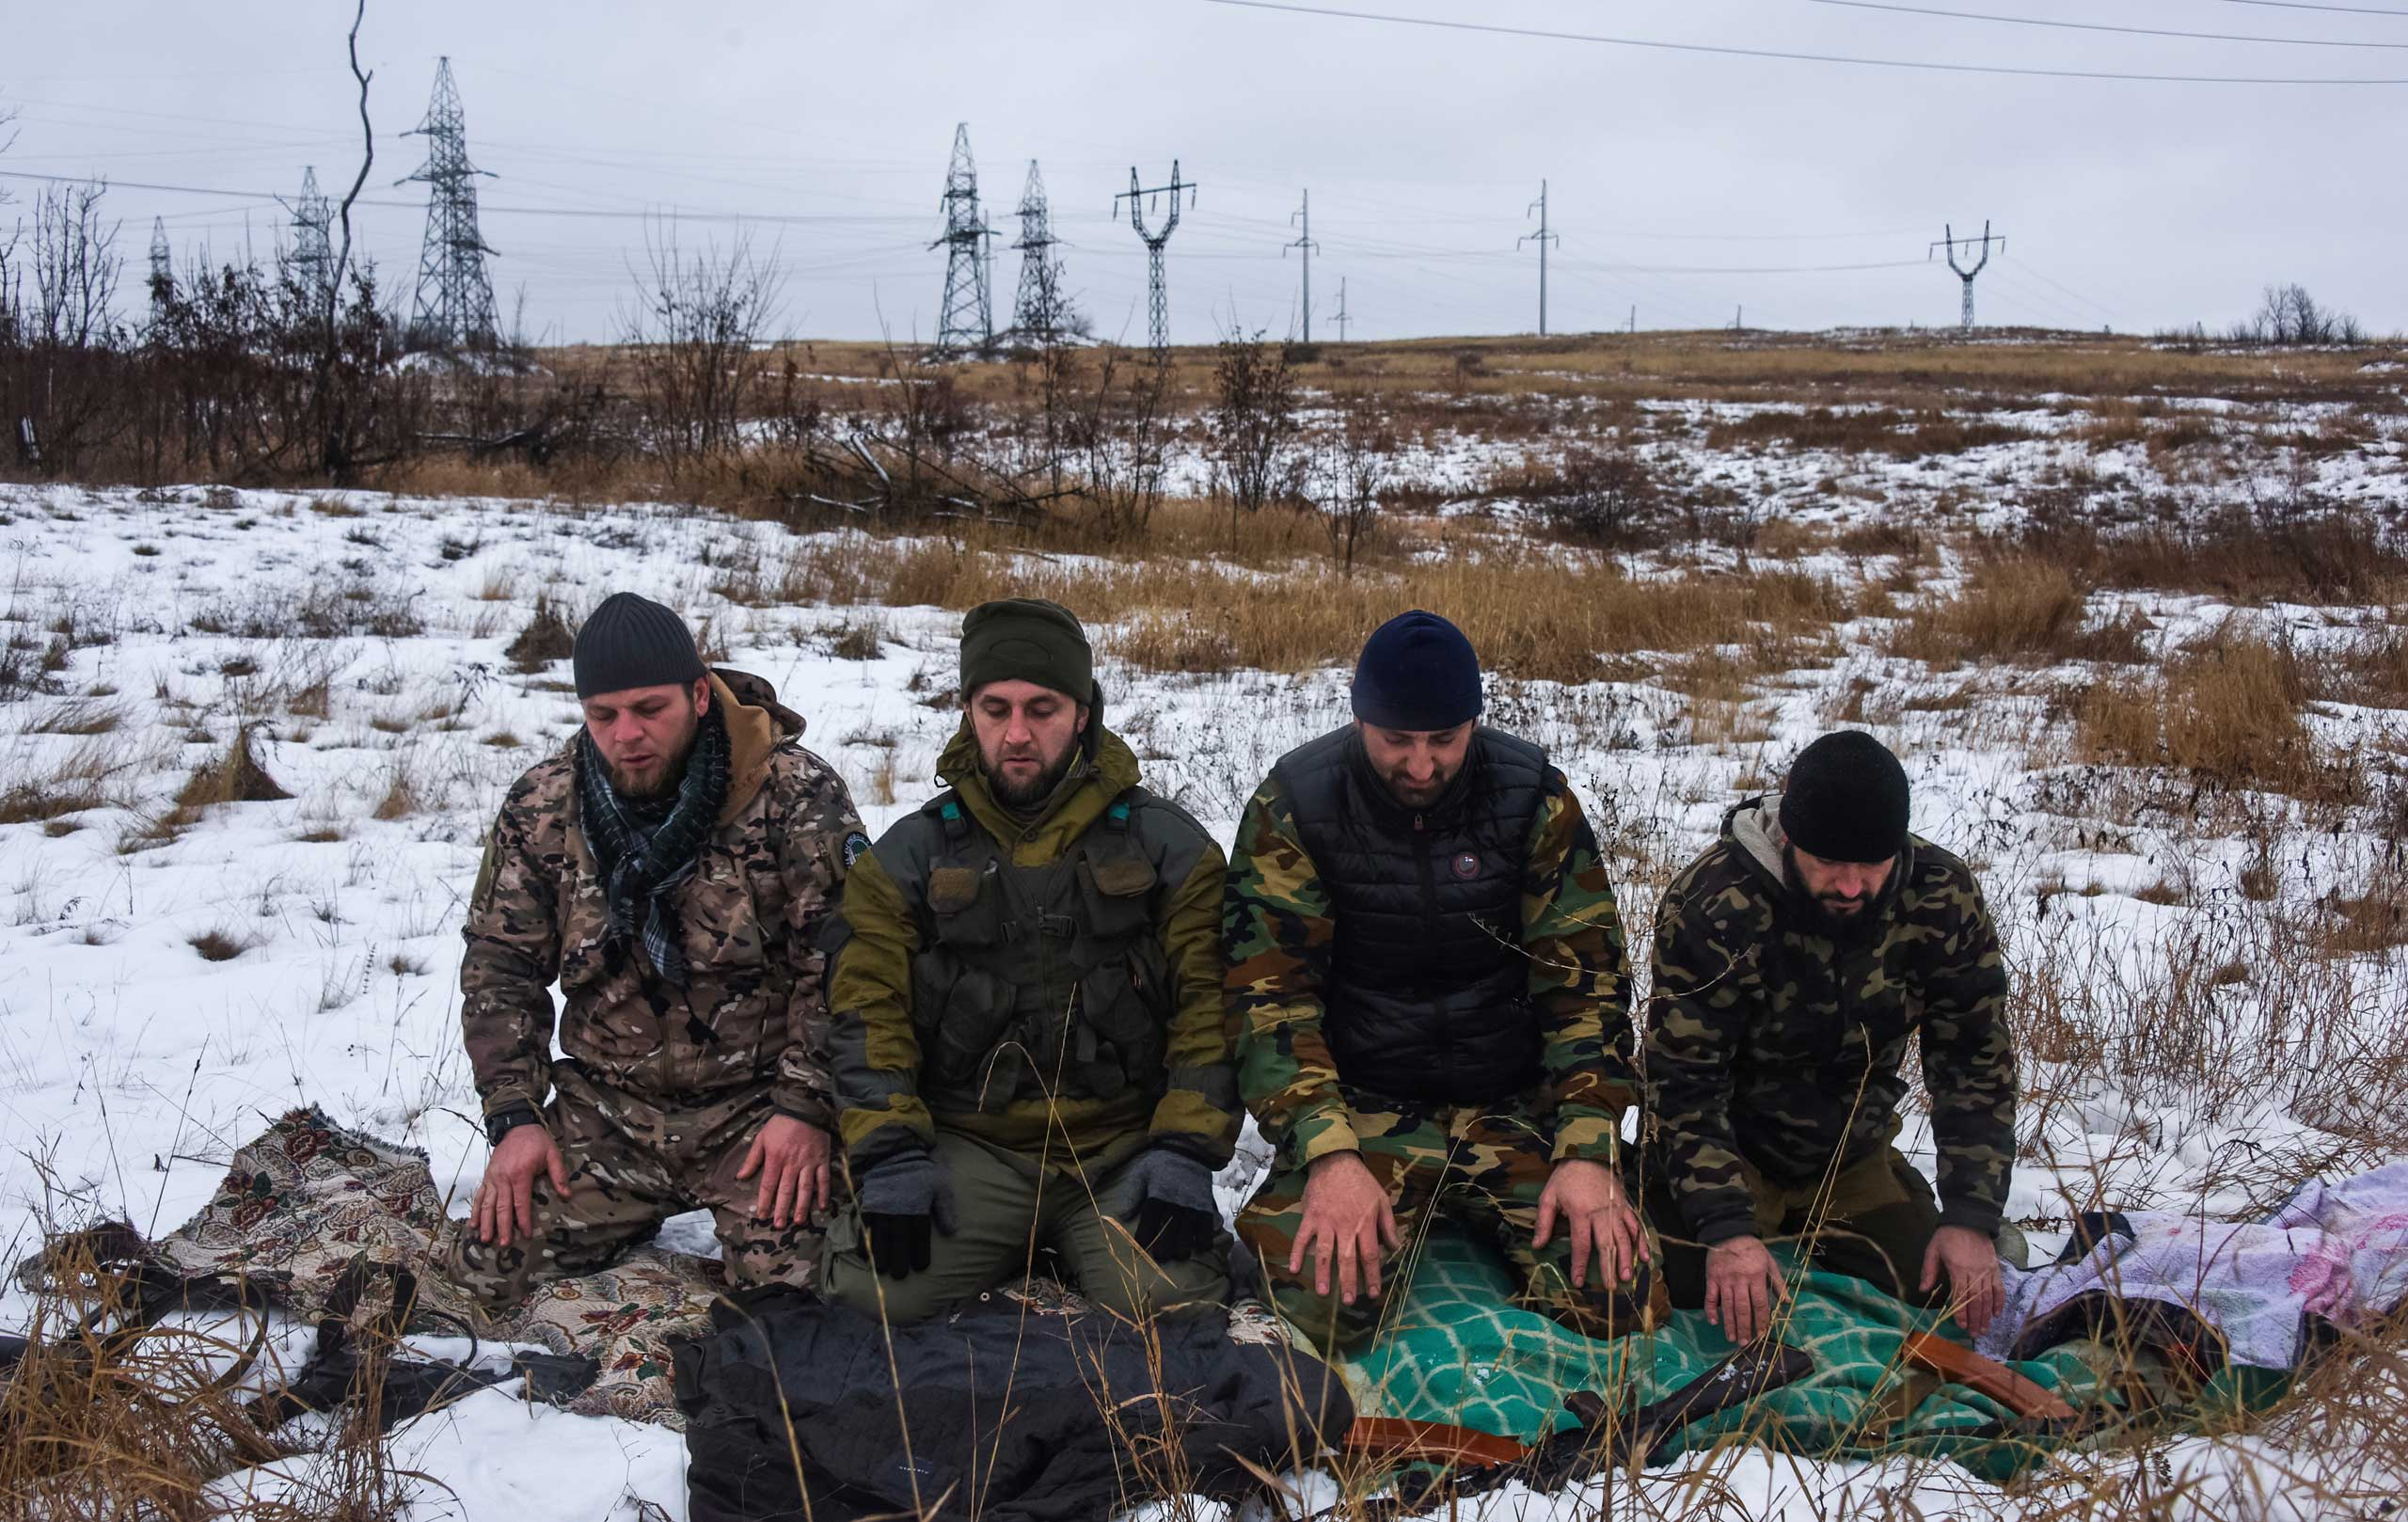 Muslim Chechen men, who fight alongside pro-Russian rebels, pray near a checkpoint in the town of Zugres, Eastern Ukraine, on Jan. 11, 2015.